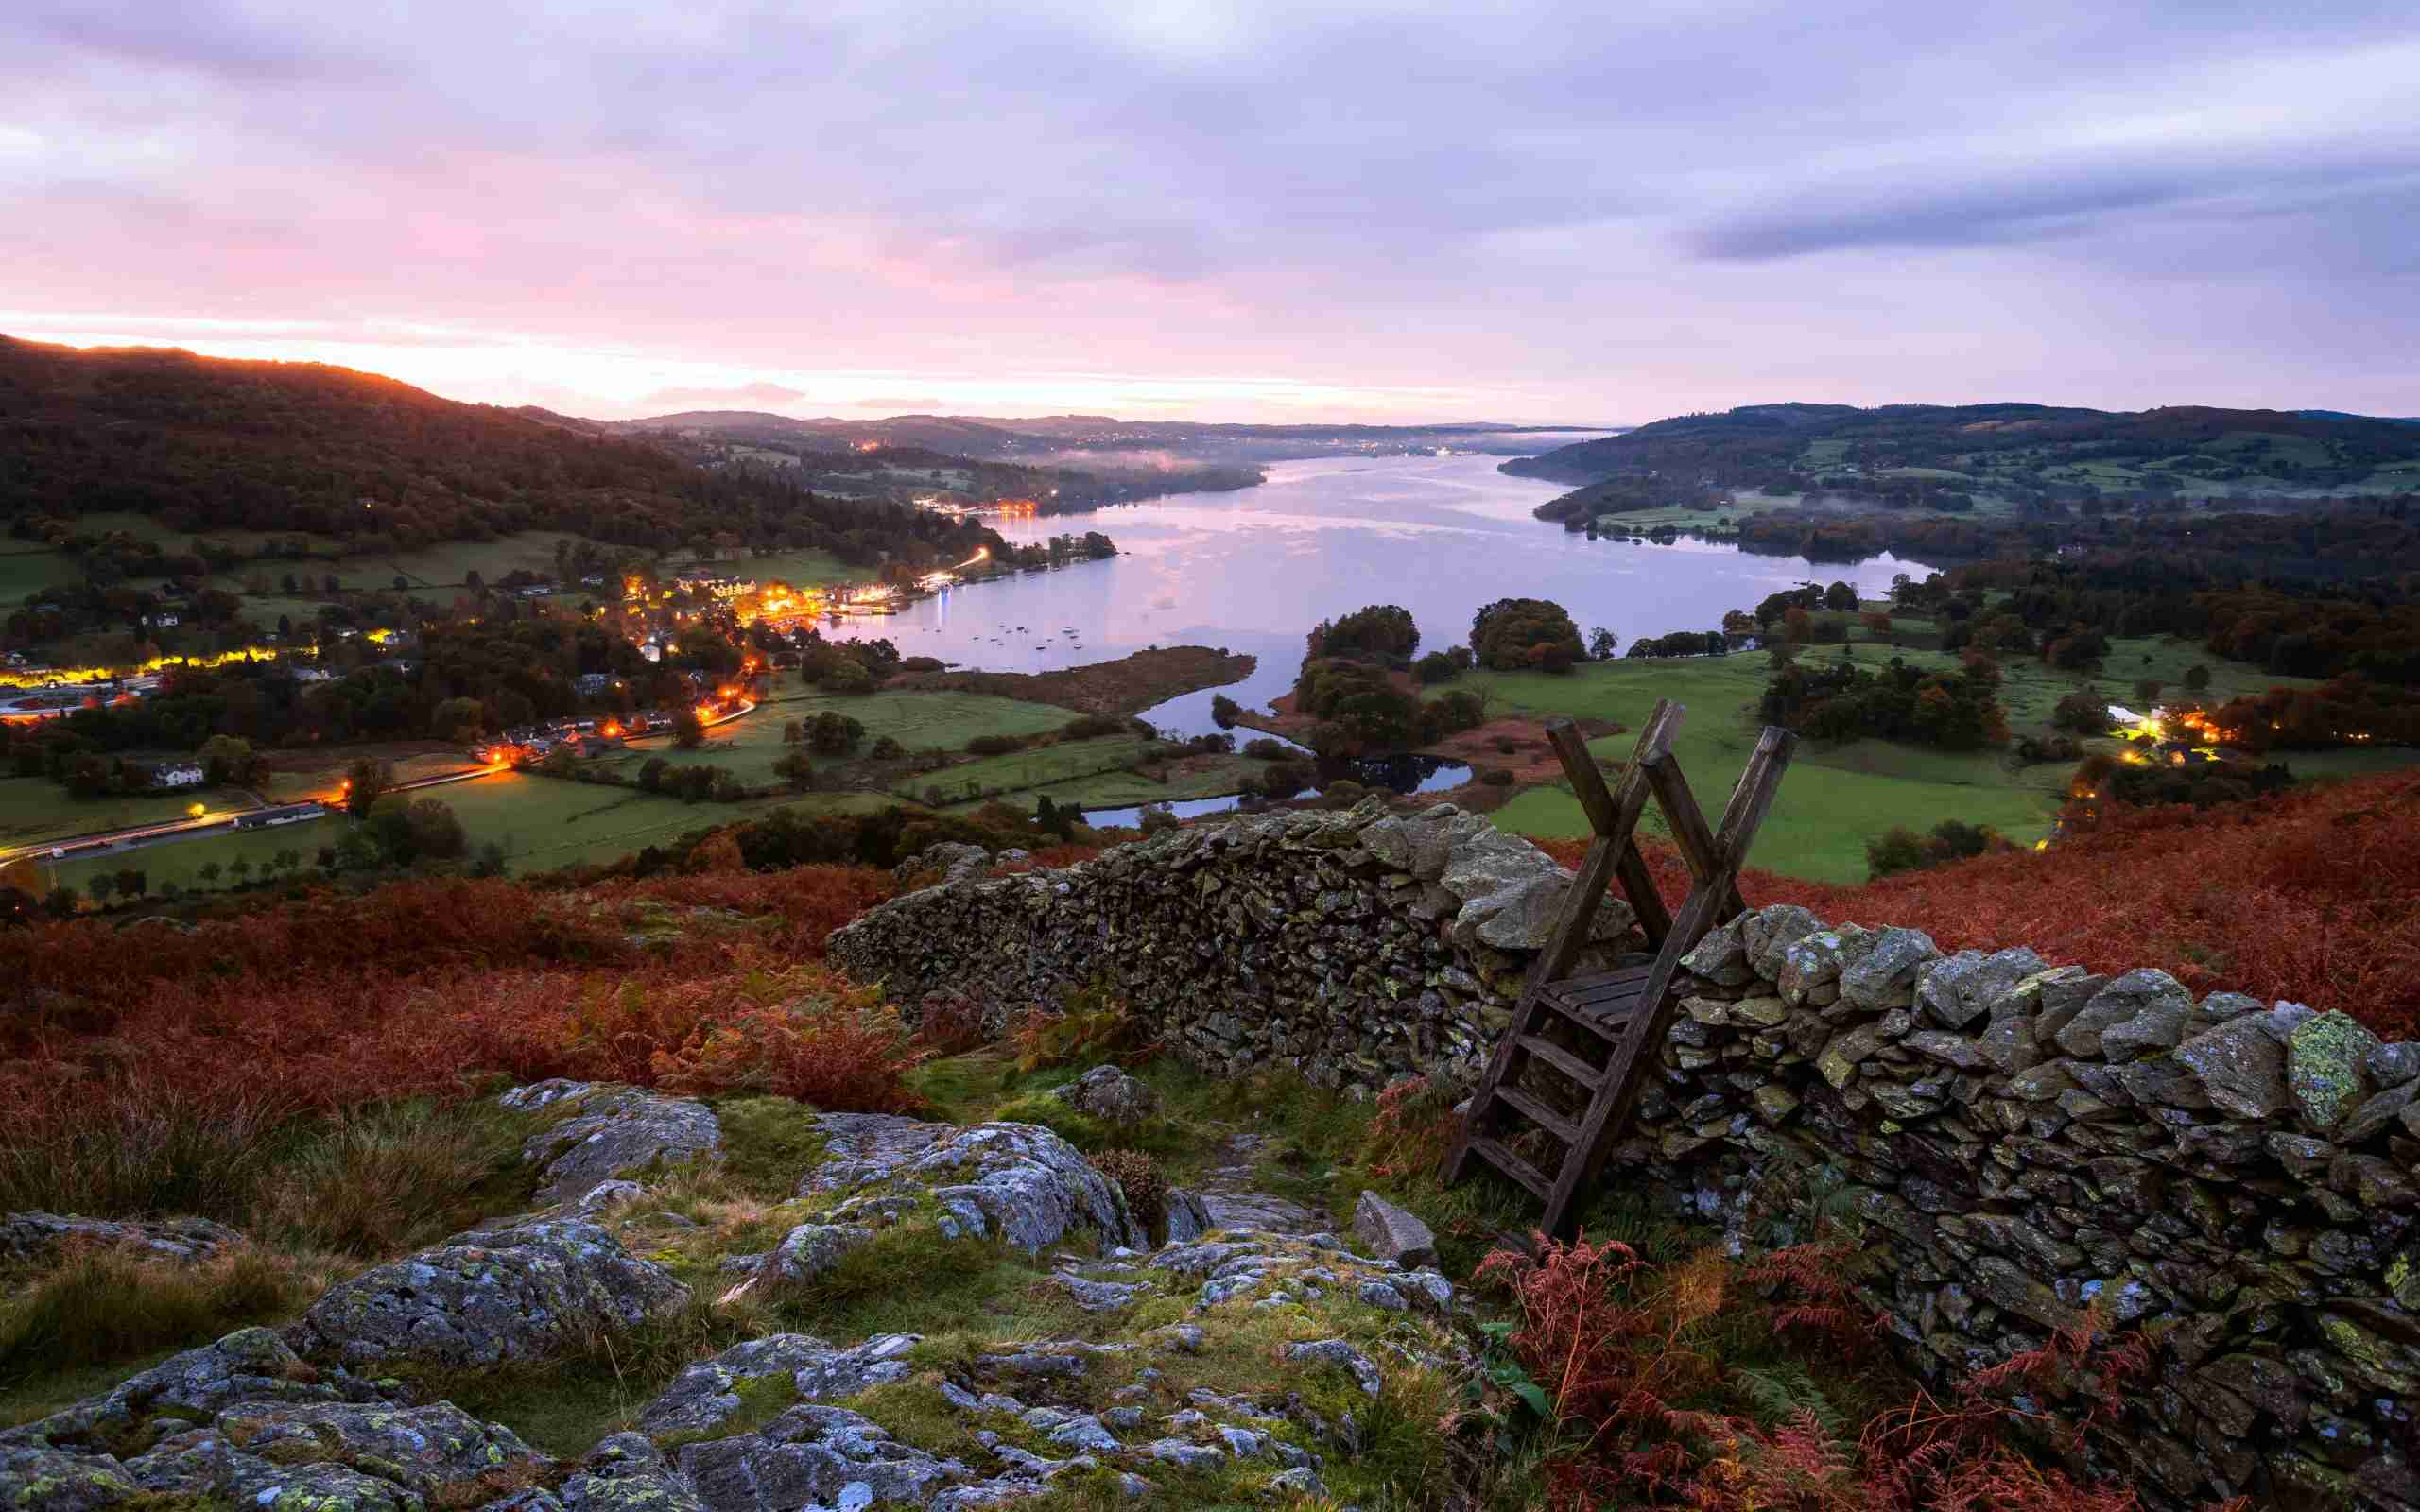 Lake Windermere from Loughrigg Fell, Lake District. (Photo by joe daniel price/Getty Images)